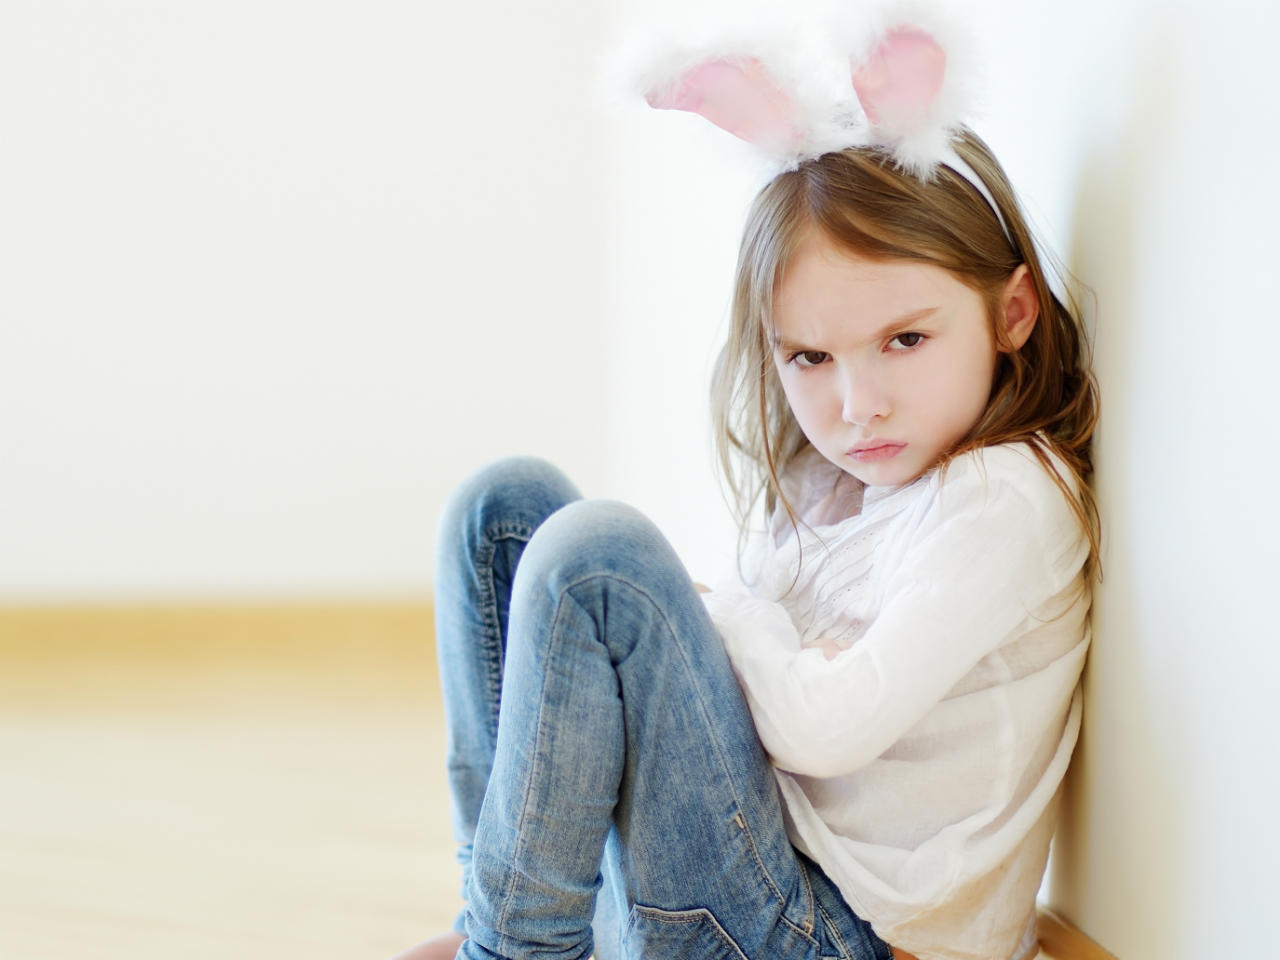 Little girl wearing bunny ears sitting on the floor with her arms crossed